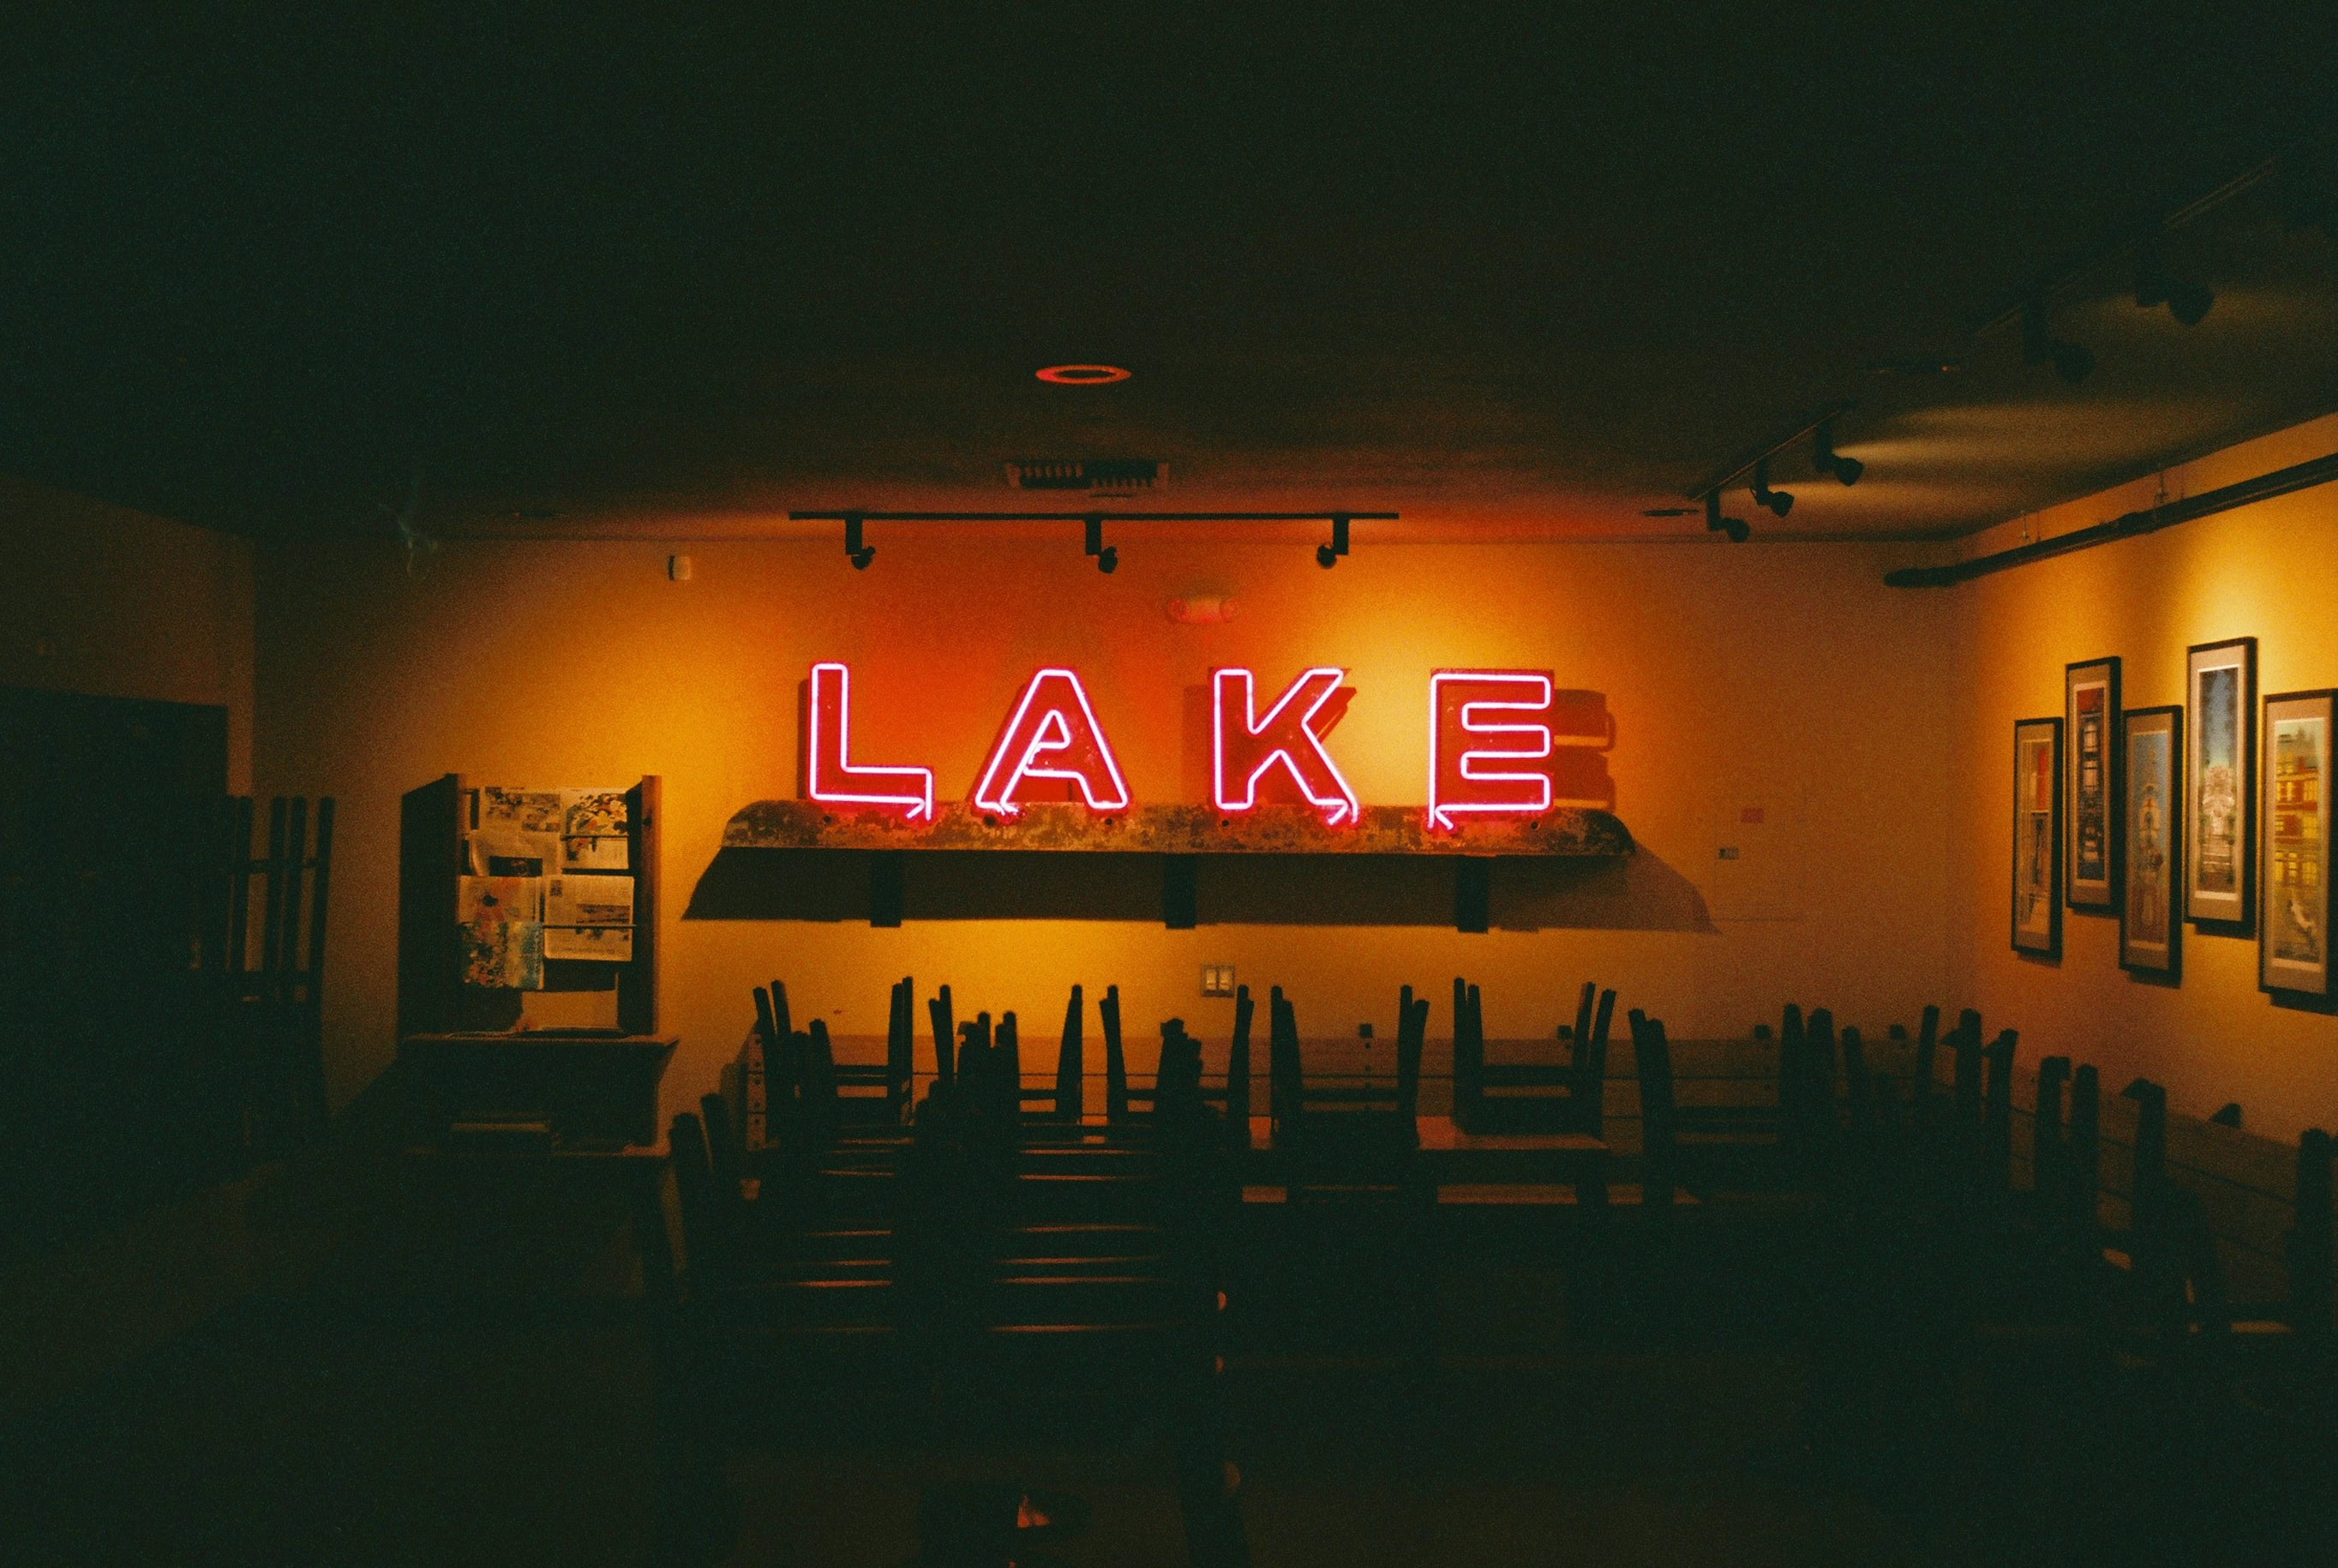 red Lake LED signage inside room